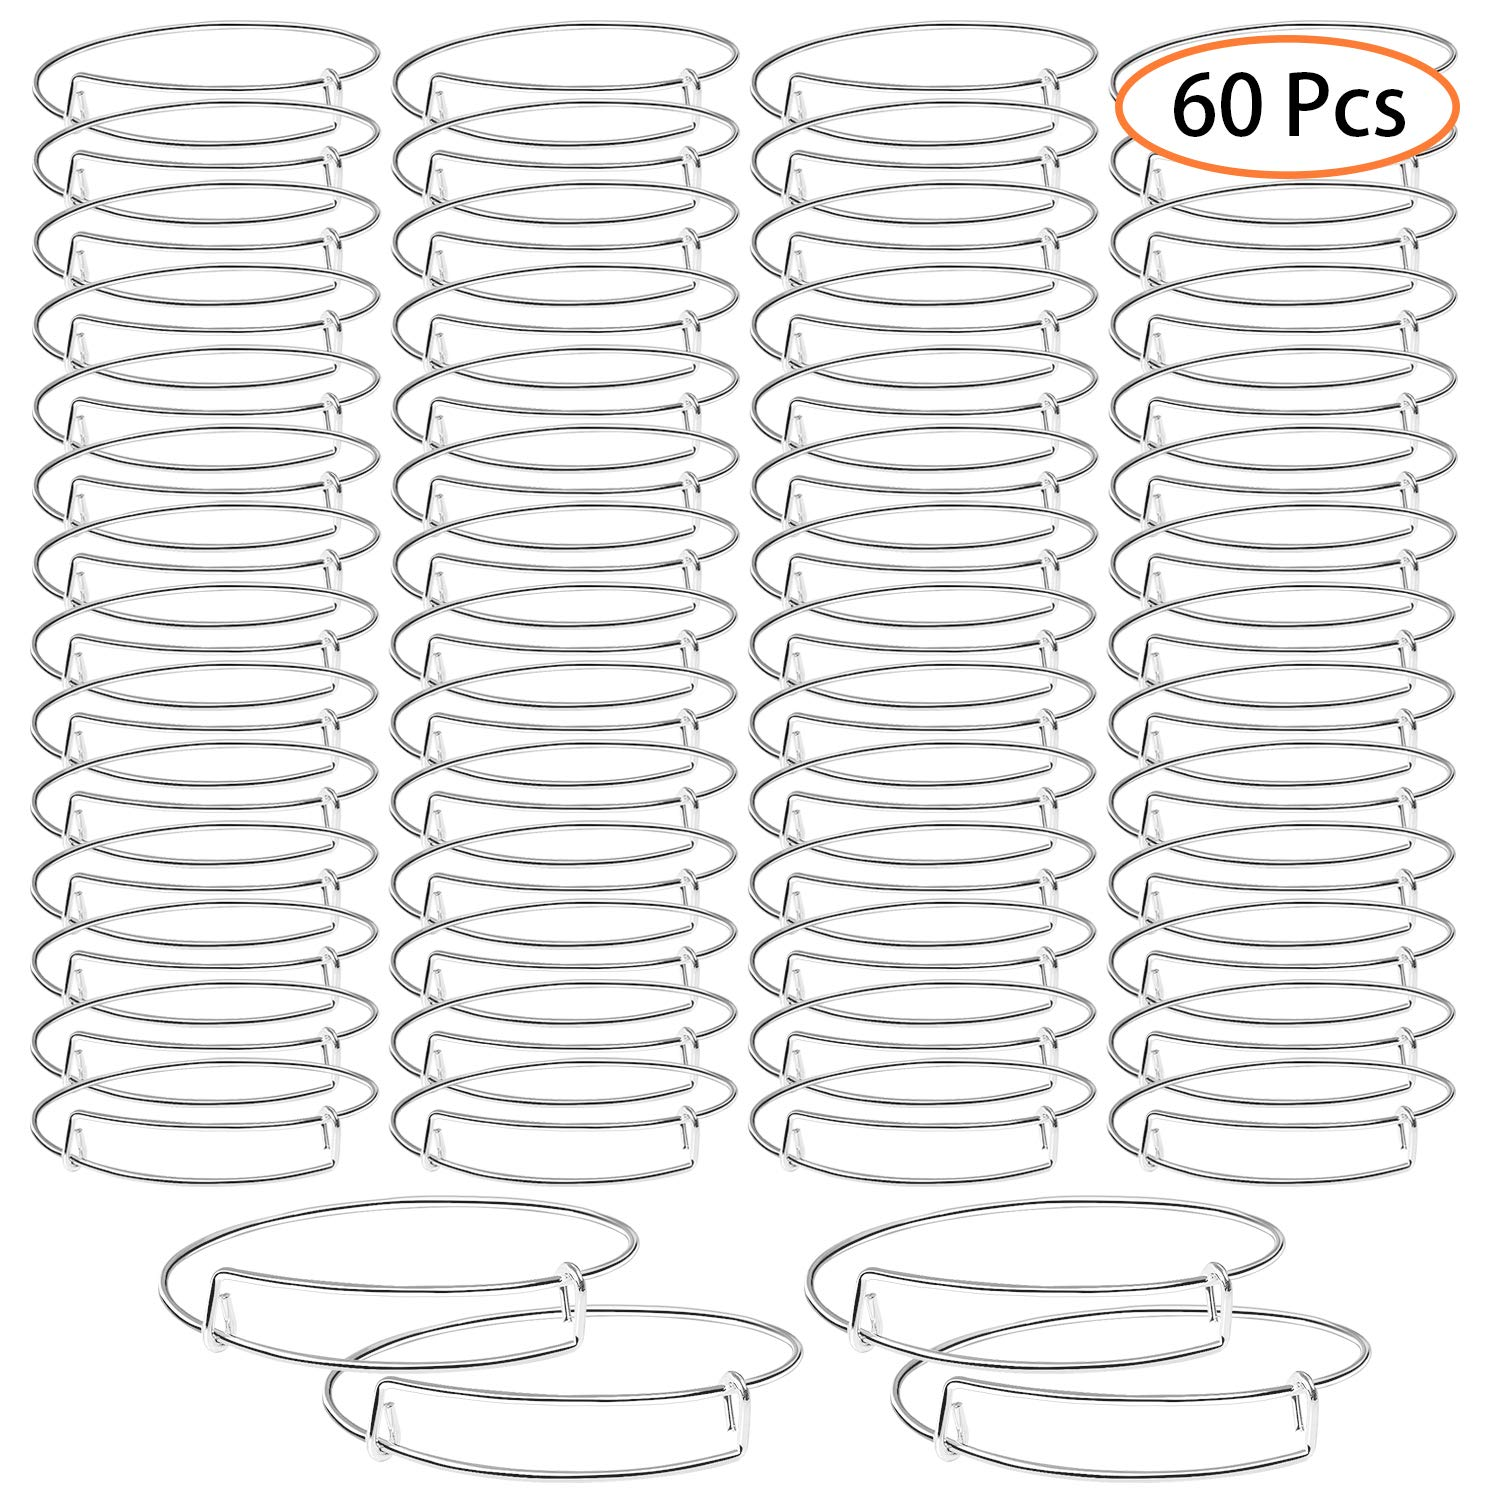 UPINS 60 Pieces Expandable Bangle Bracelets Adjustable Wire Blank Bracelets for Women DIY Jewelry Making, Silver by UPINS